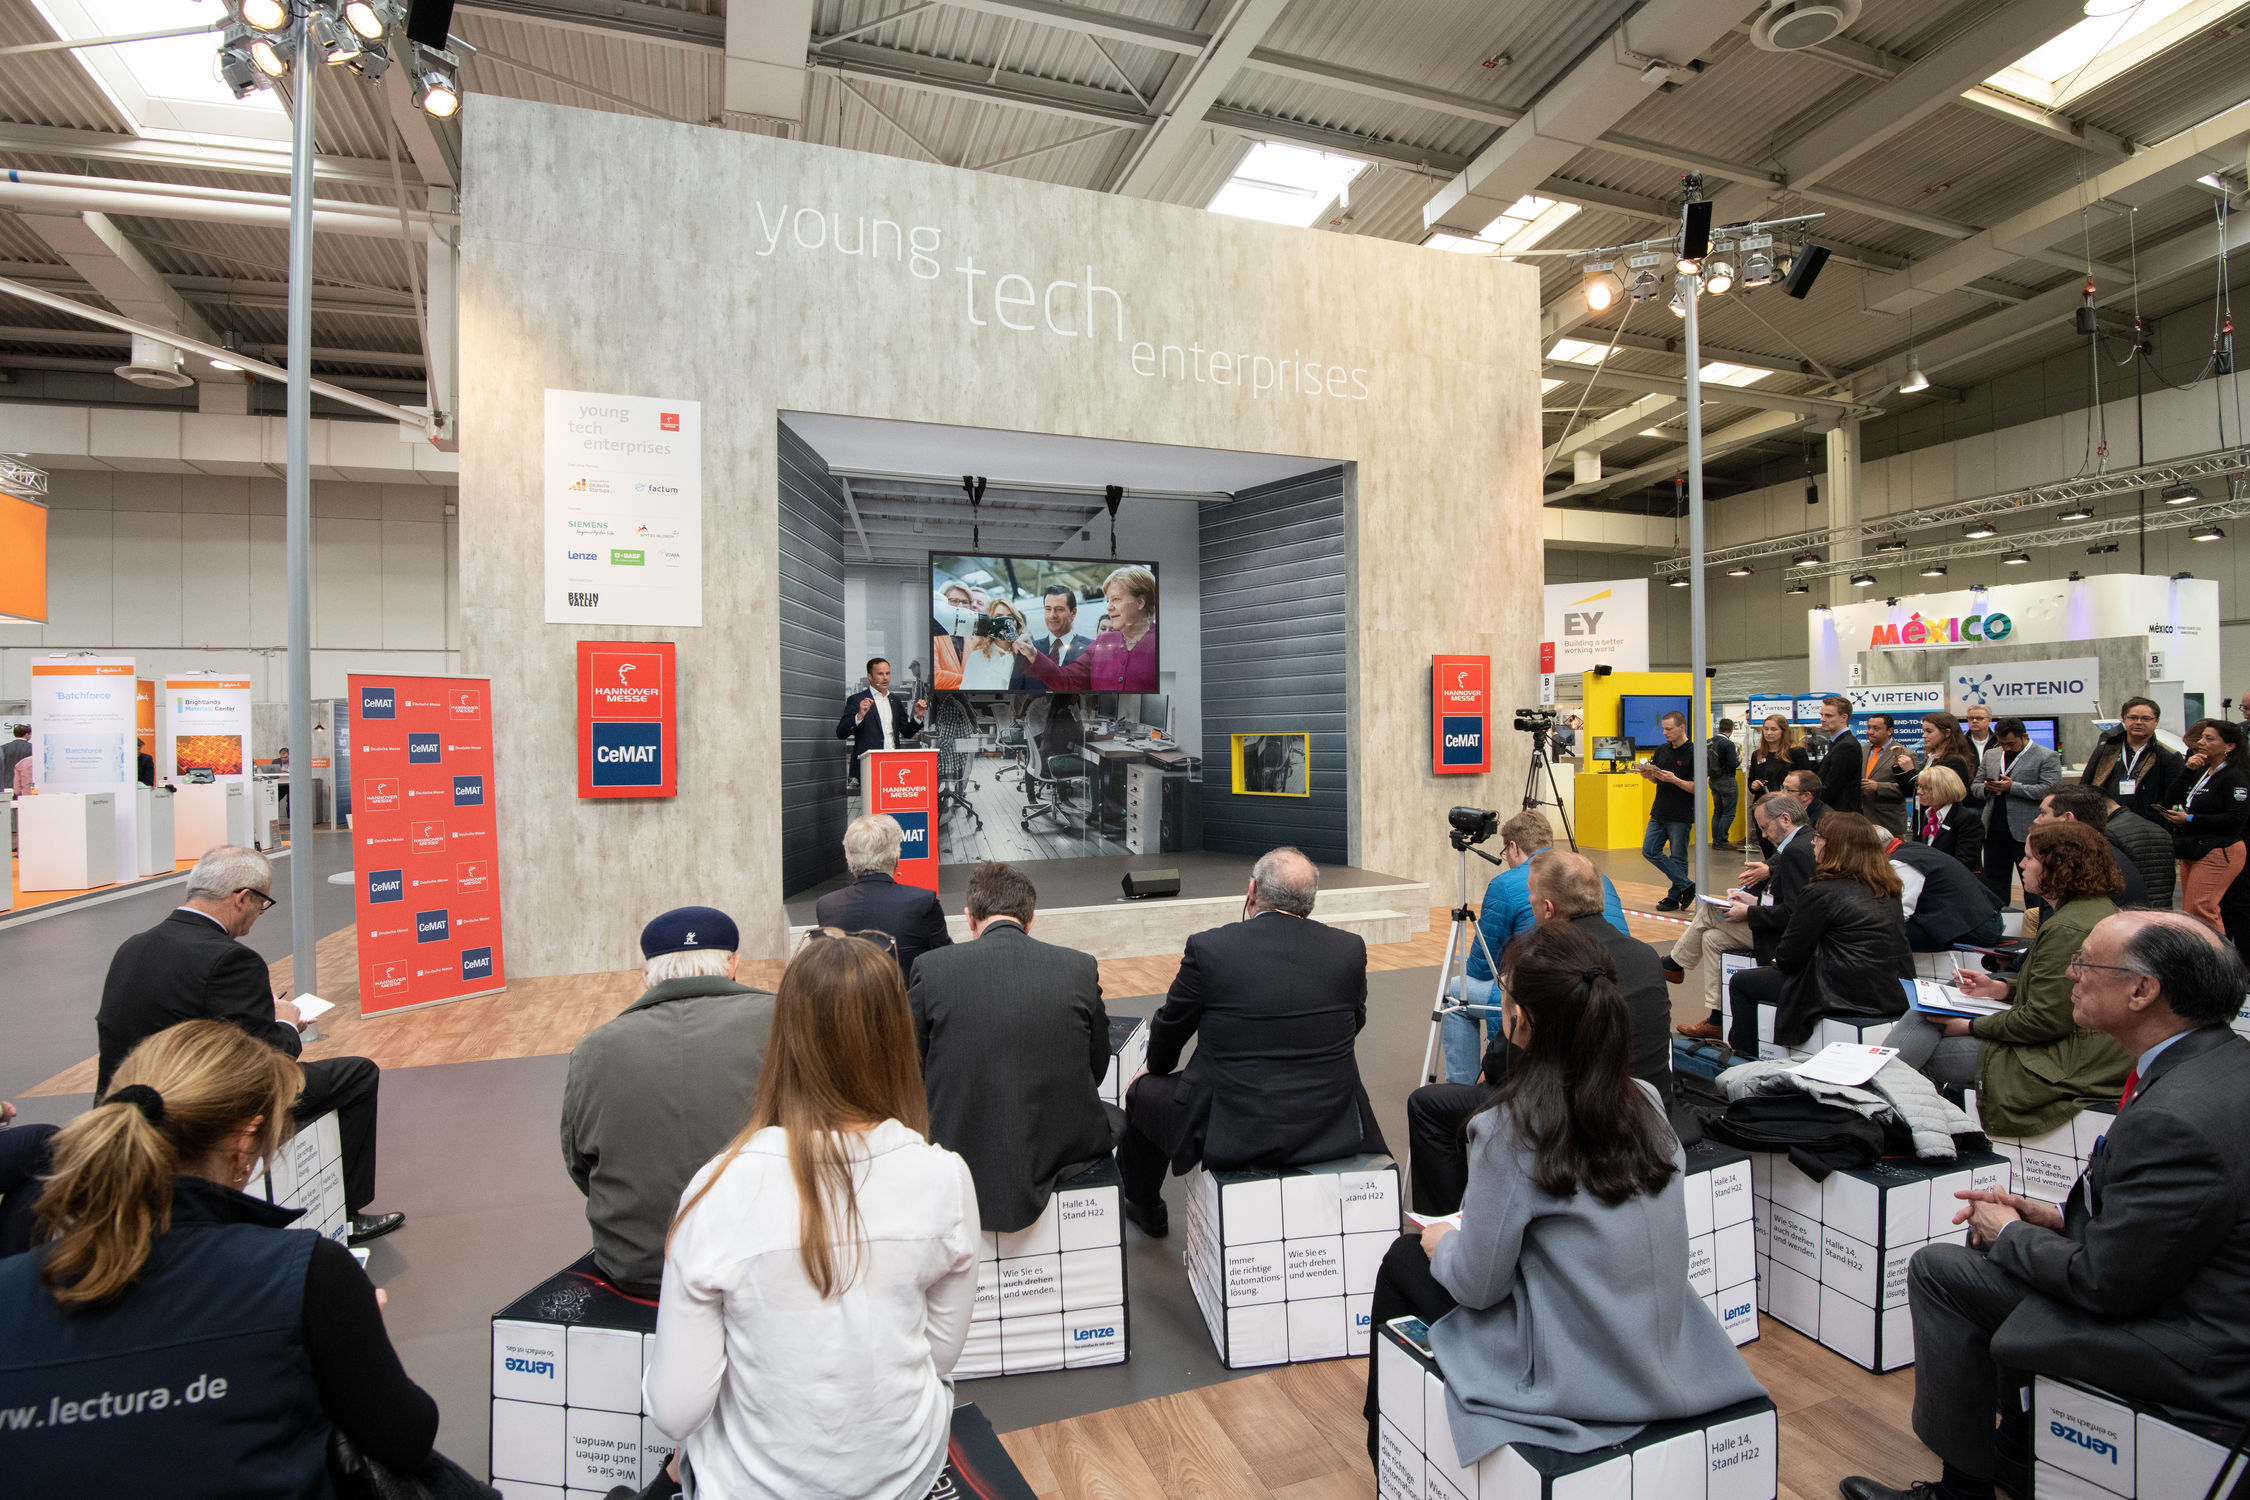 HANNOVER MESSE/CeMAT 2018, Young Tech Enterpises